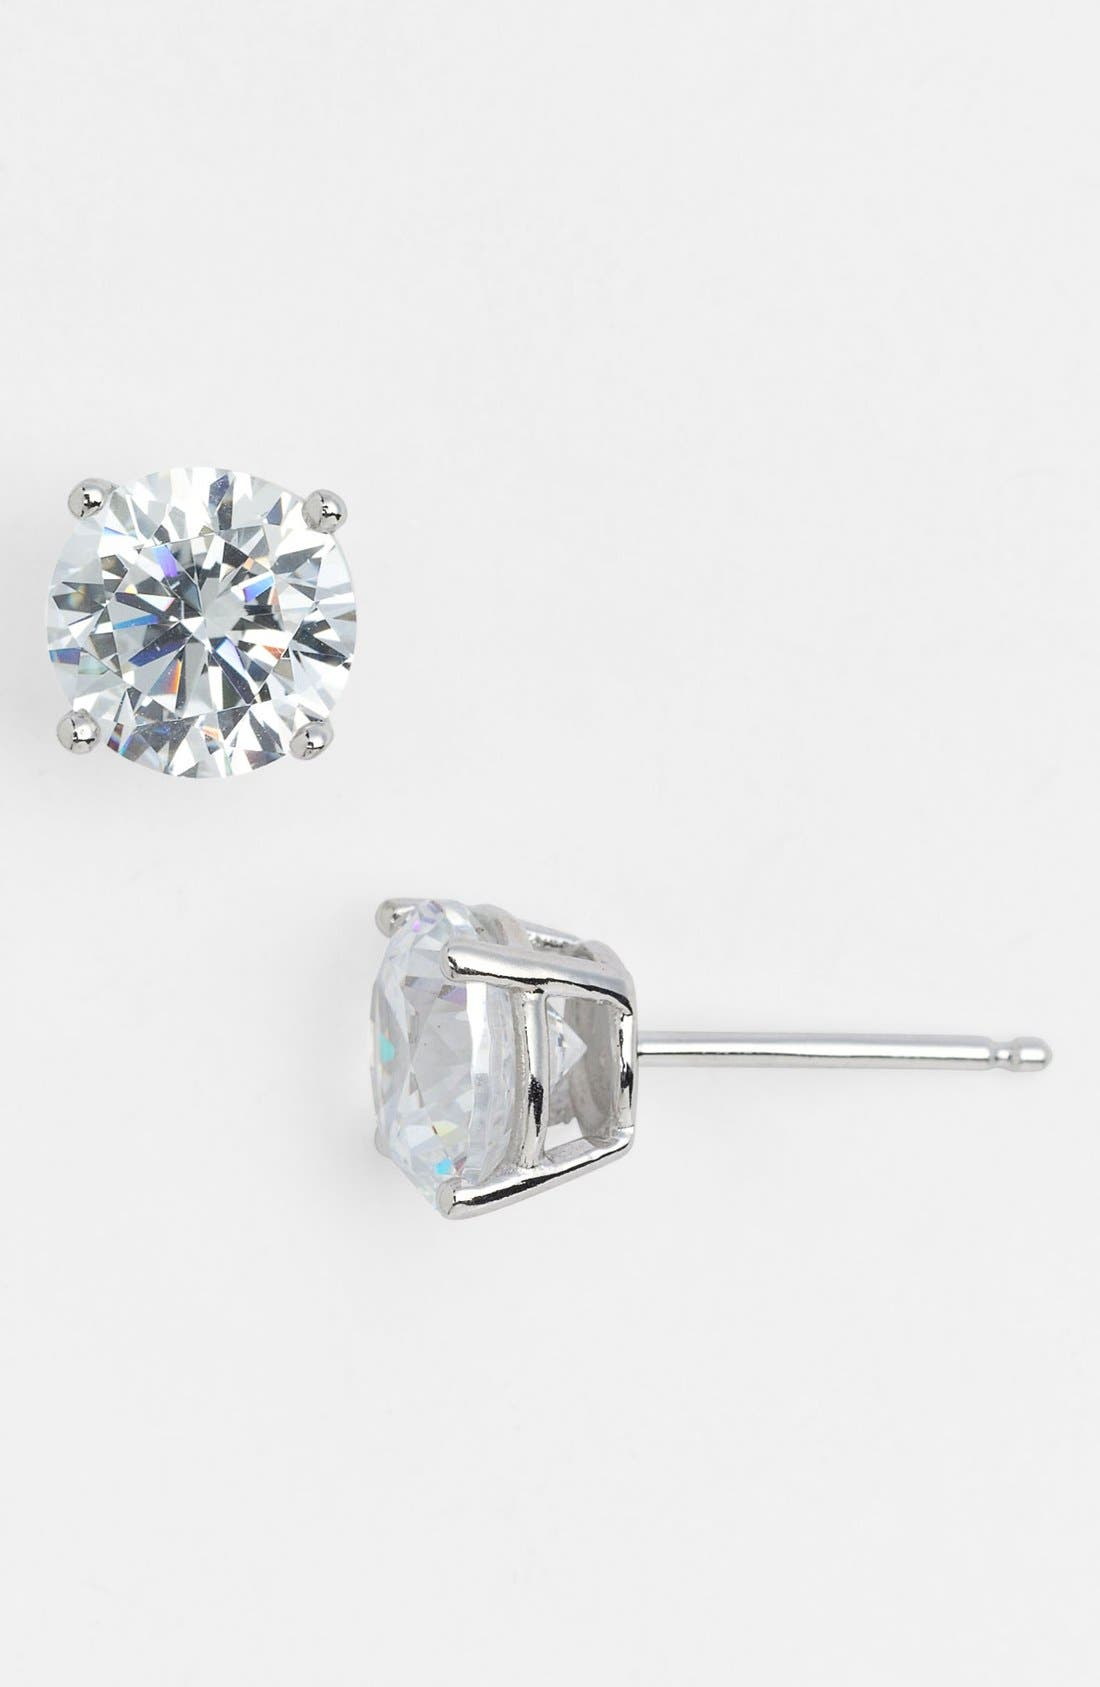 Main Image - Nordstrom 3ct tw Cubic Zirconia Stud Earrings (Special Purchase)